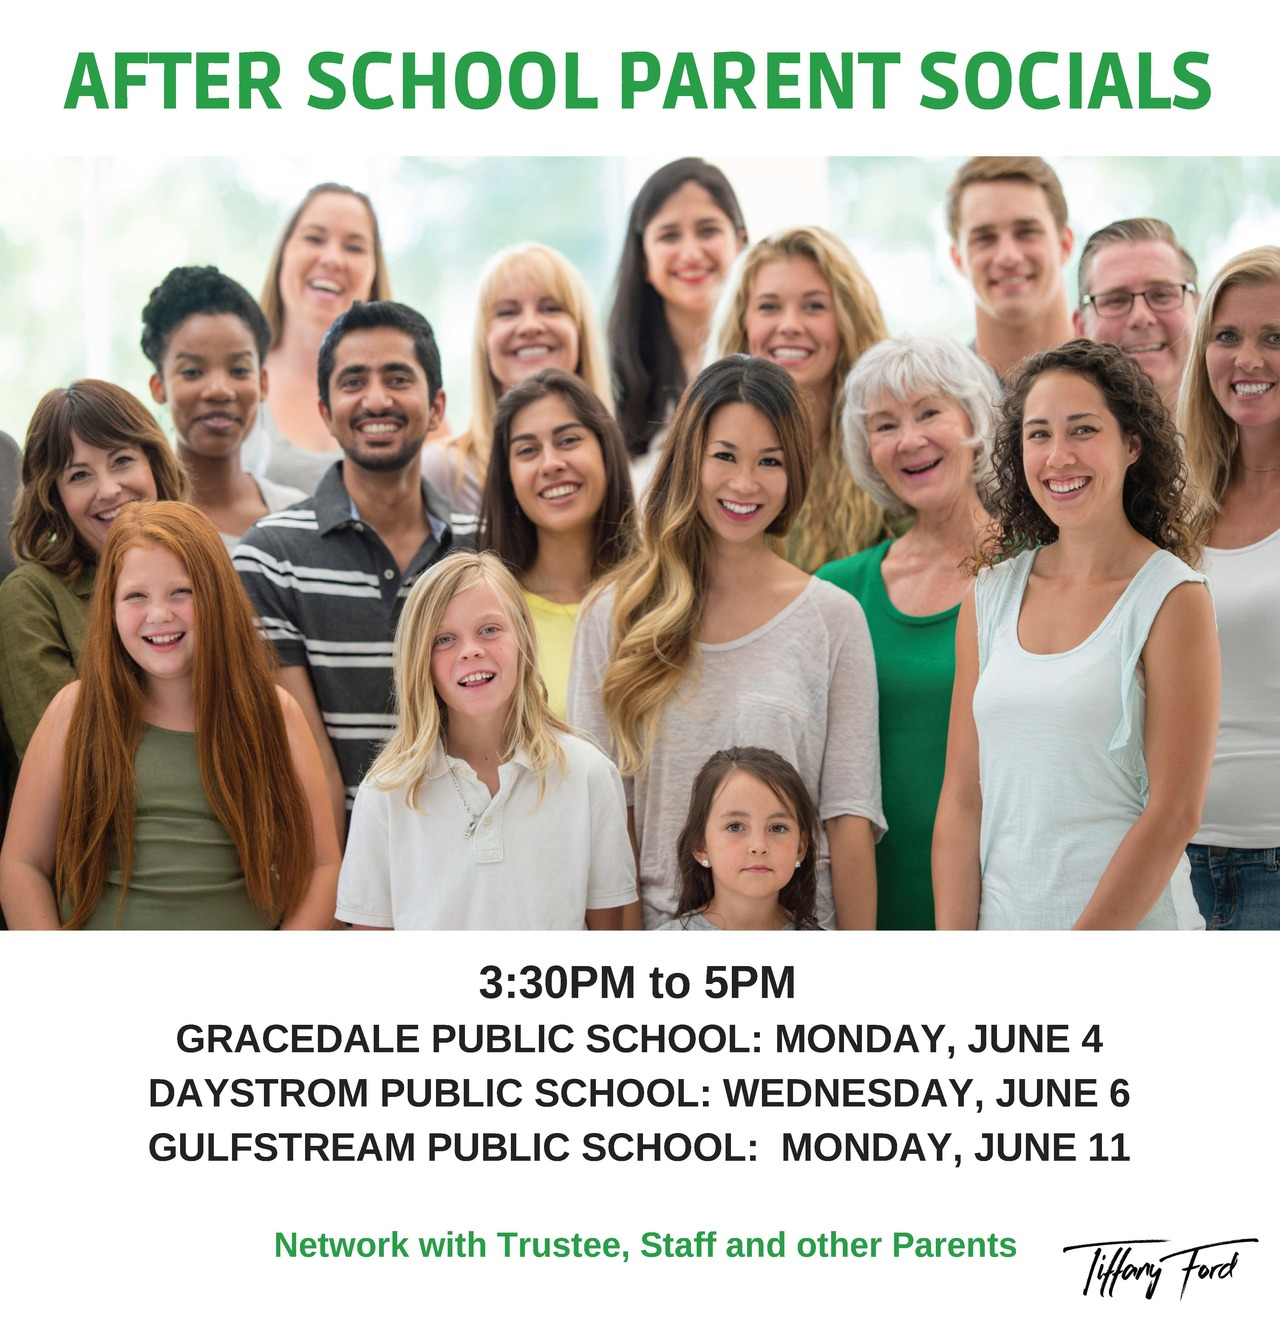 2018_06_04_-_2018_06_11_After_School_Parent_Socials__Ford_